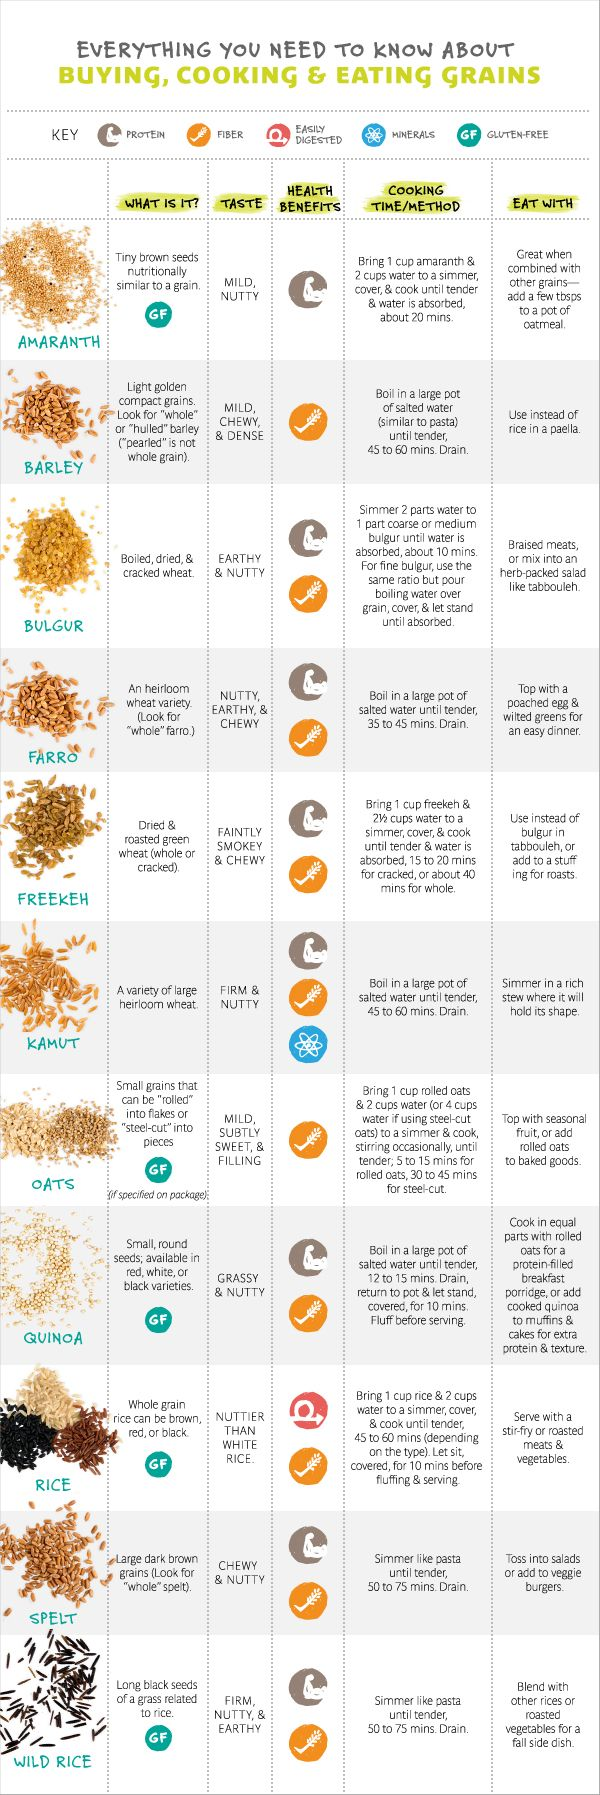 Don't Know The Difference Between Farro And Freekeh? Kamut And Quinoa? Check